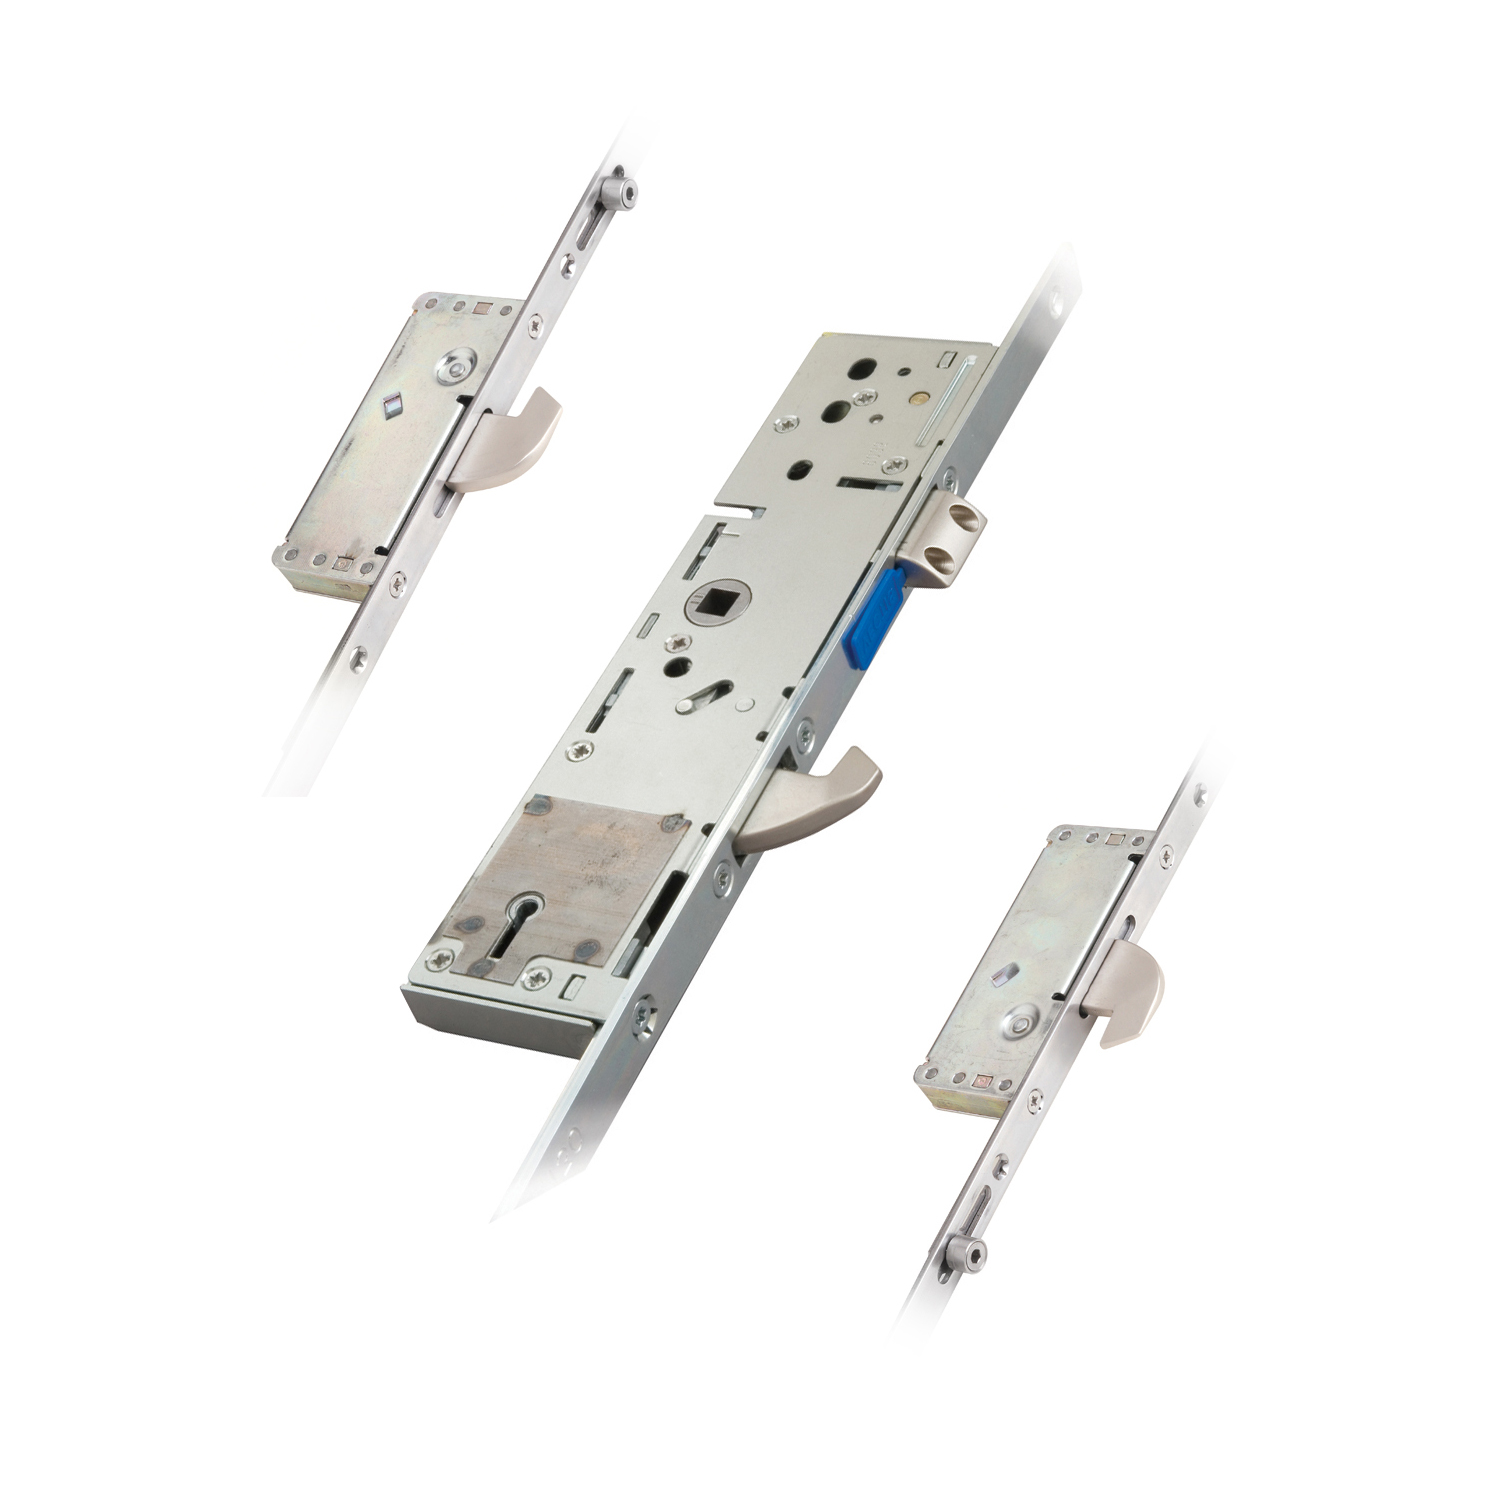 3 Hook 2 Roller Vectis Multi Point Door Lock